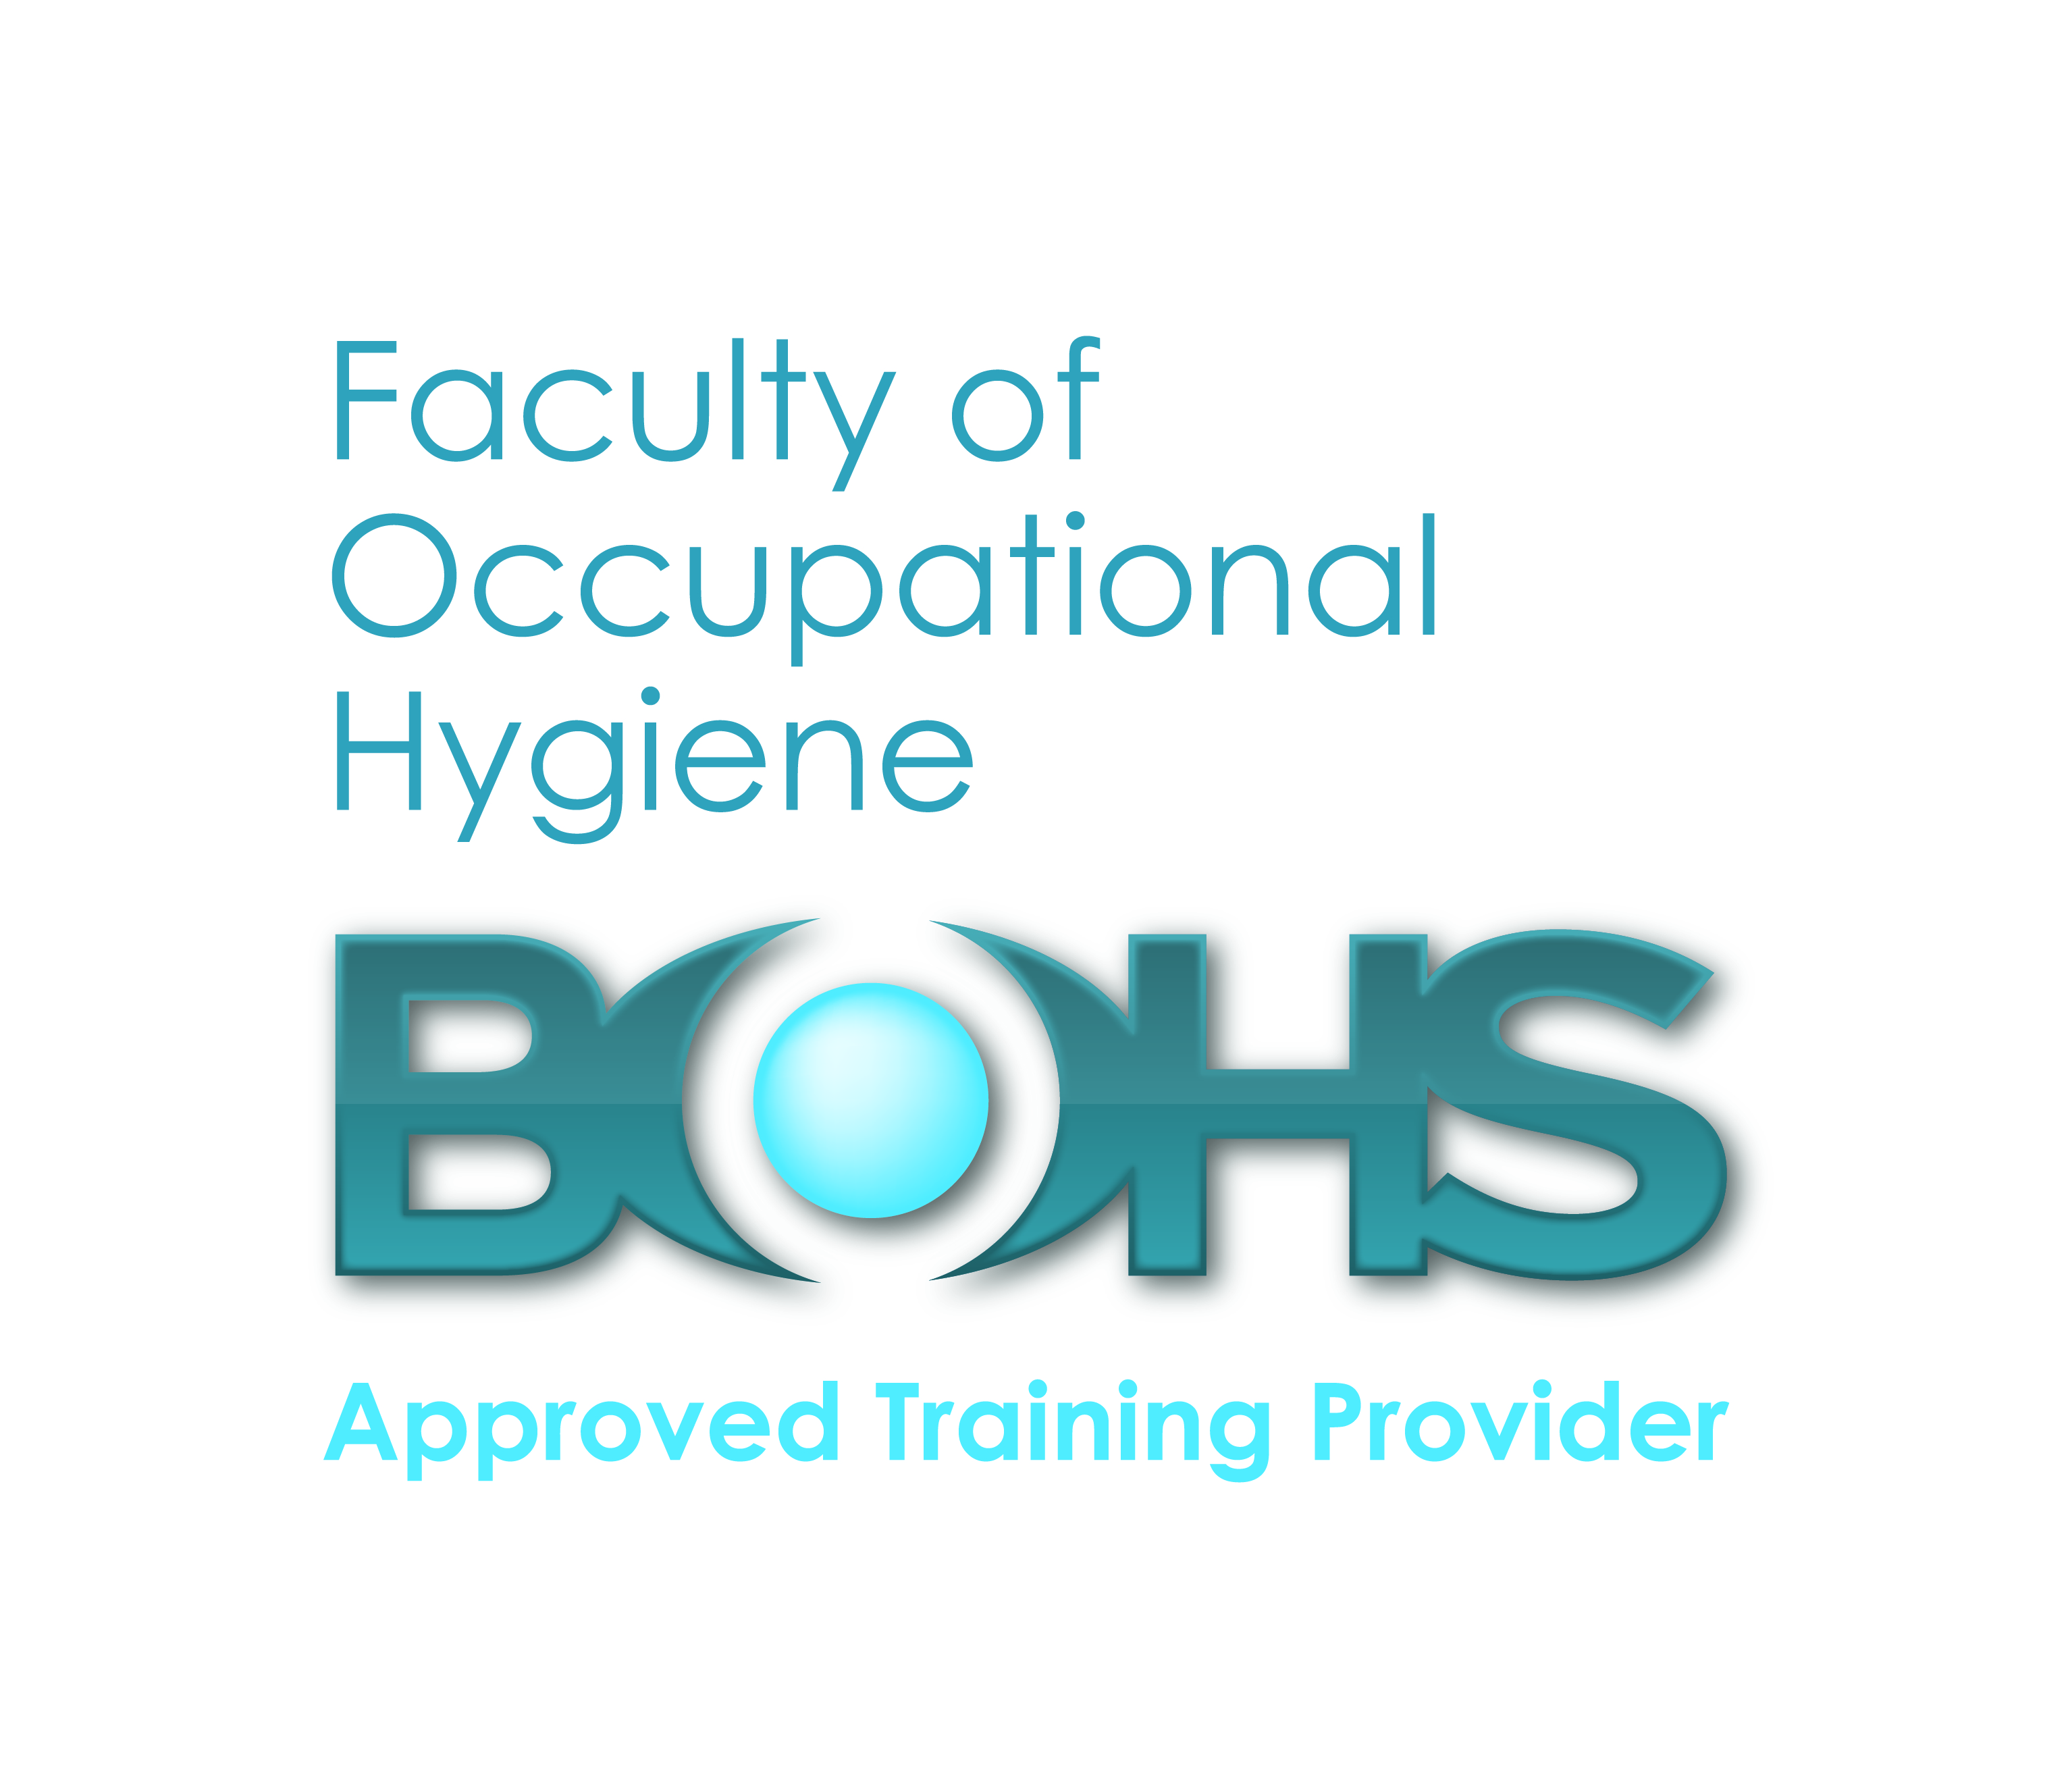 bohs p405 management of asbestos in buildings training